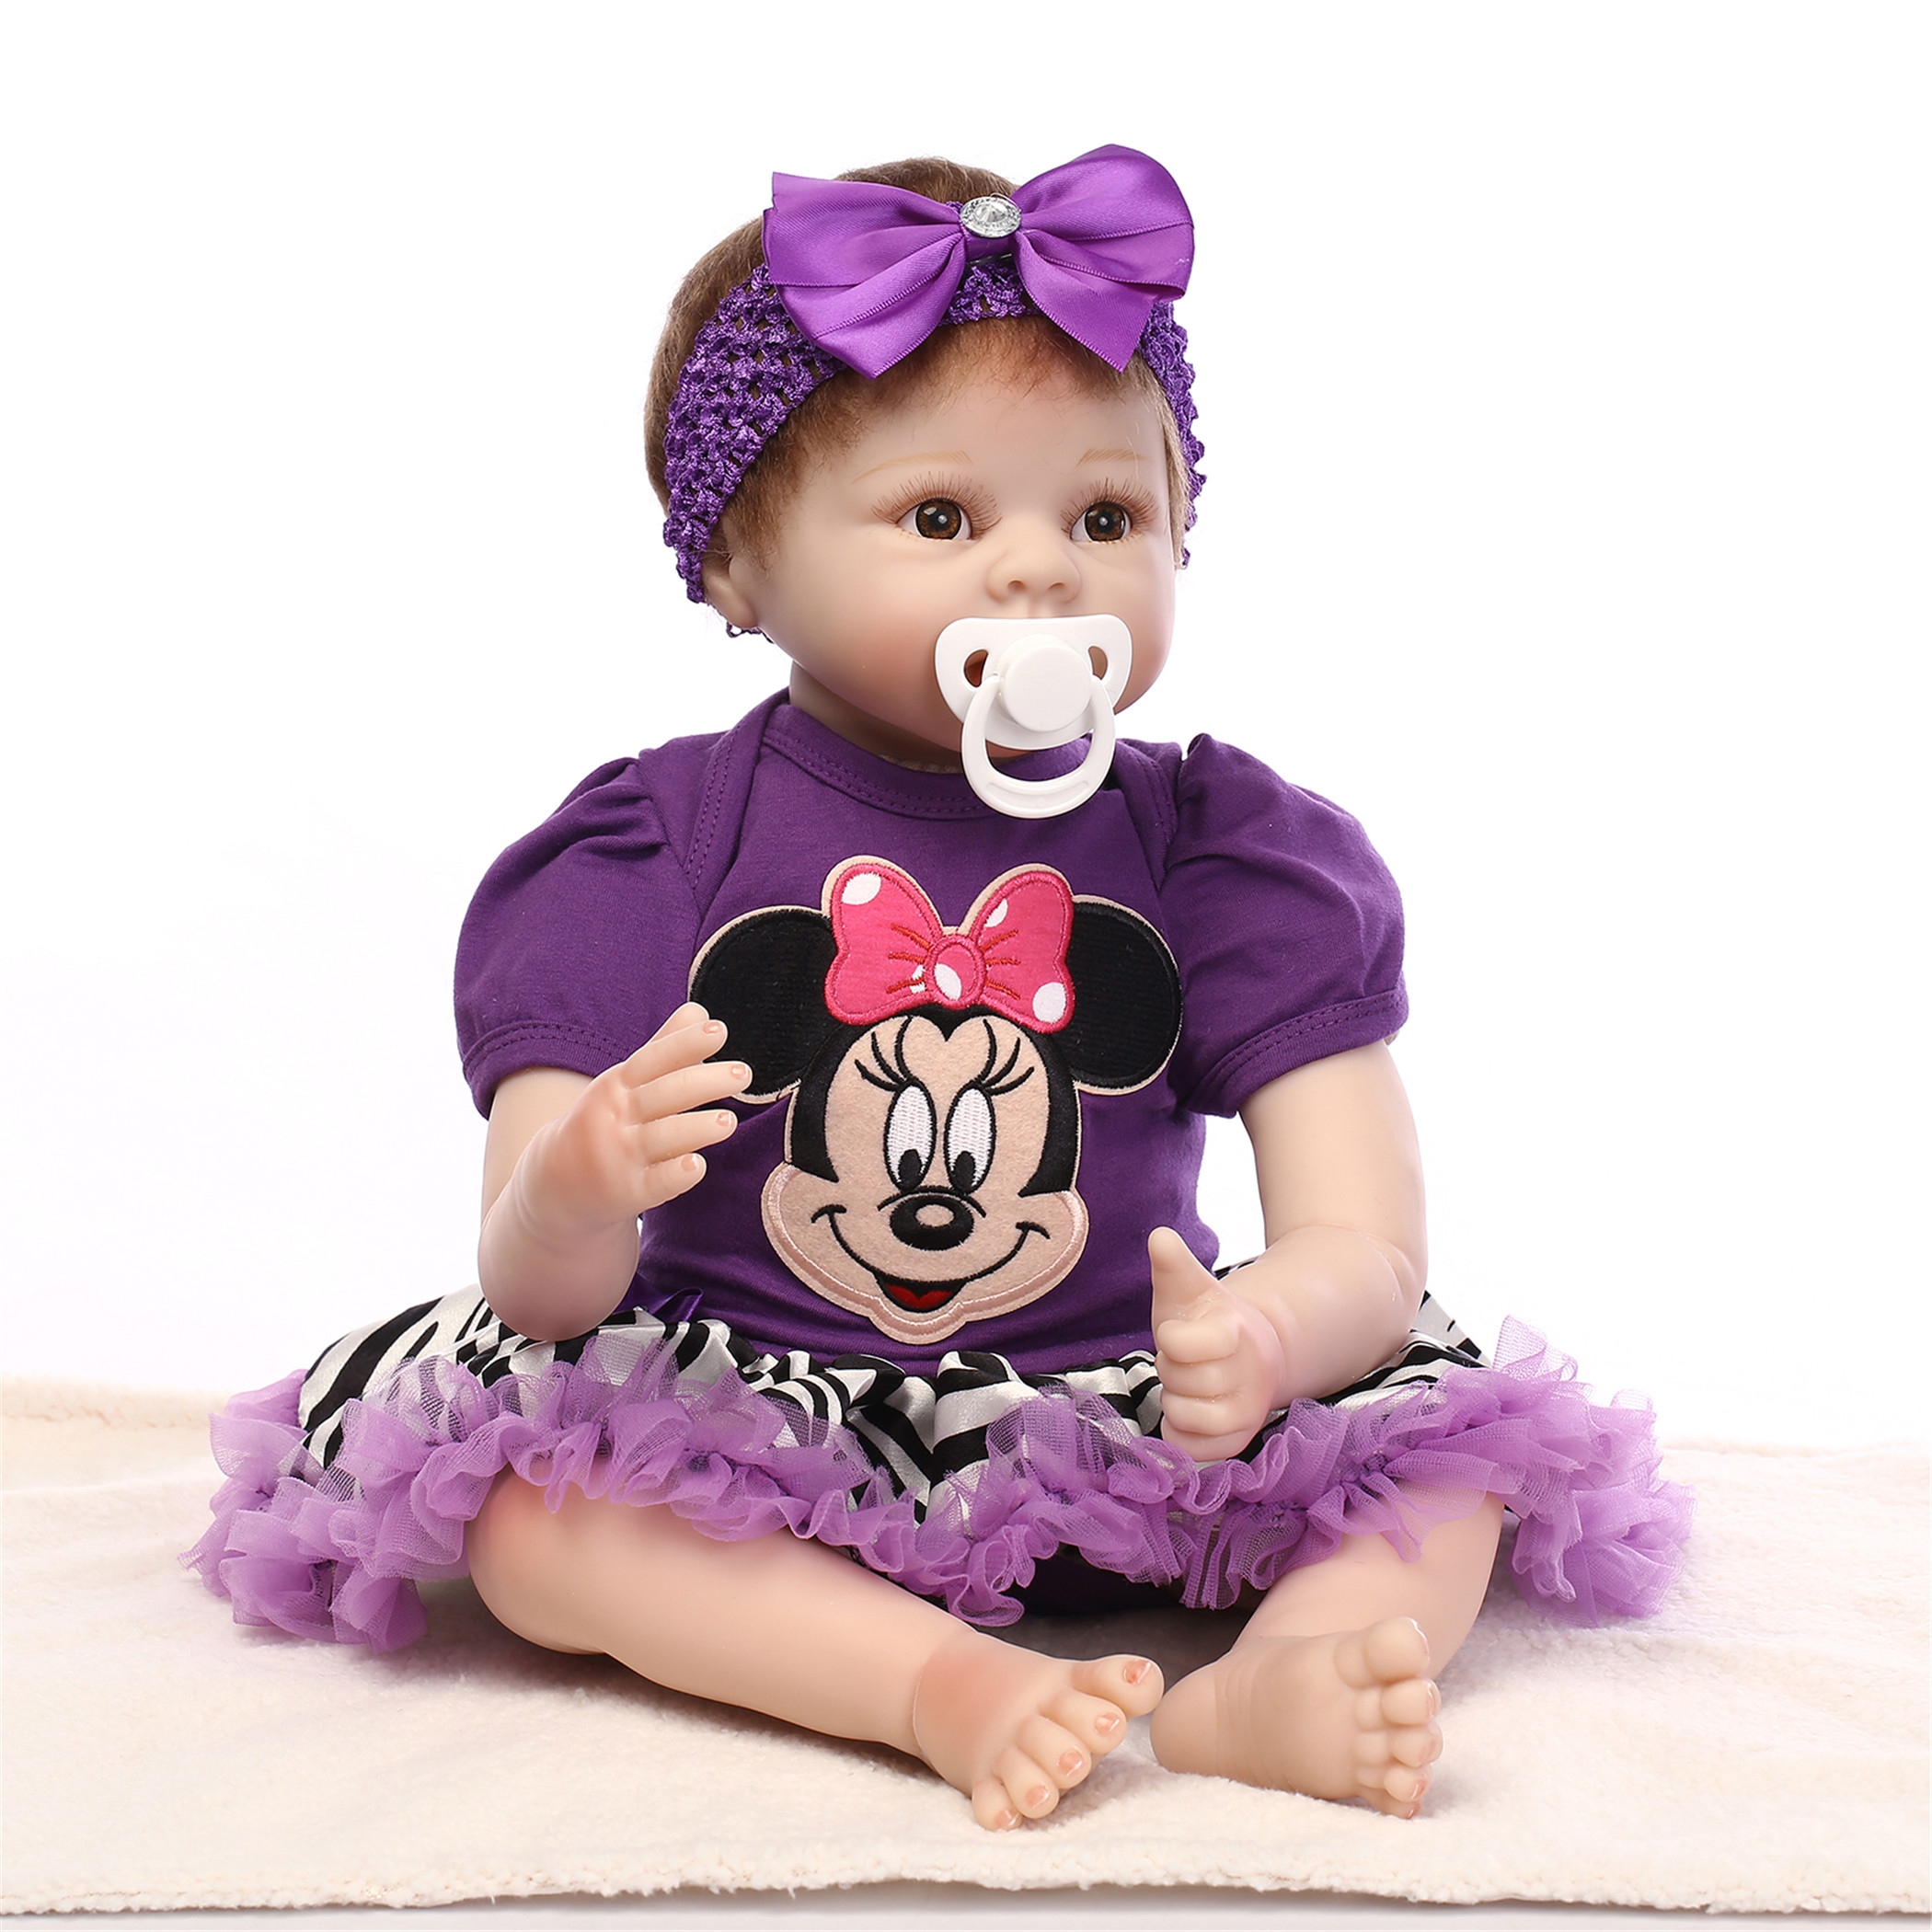 NPK Collection Reborn Baby Doll Soft Silicone vinyl 22inch 55cm Lovely Lifelike Cute Baby Birthday gift Christmas gift